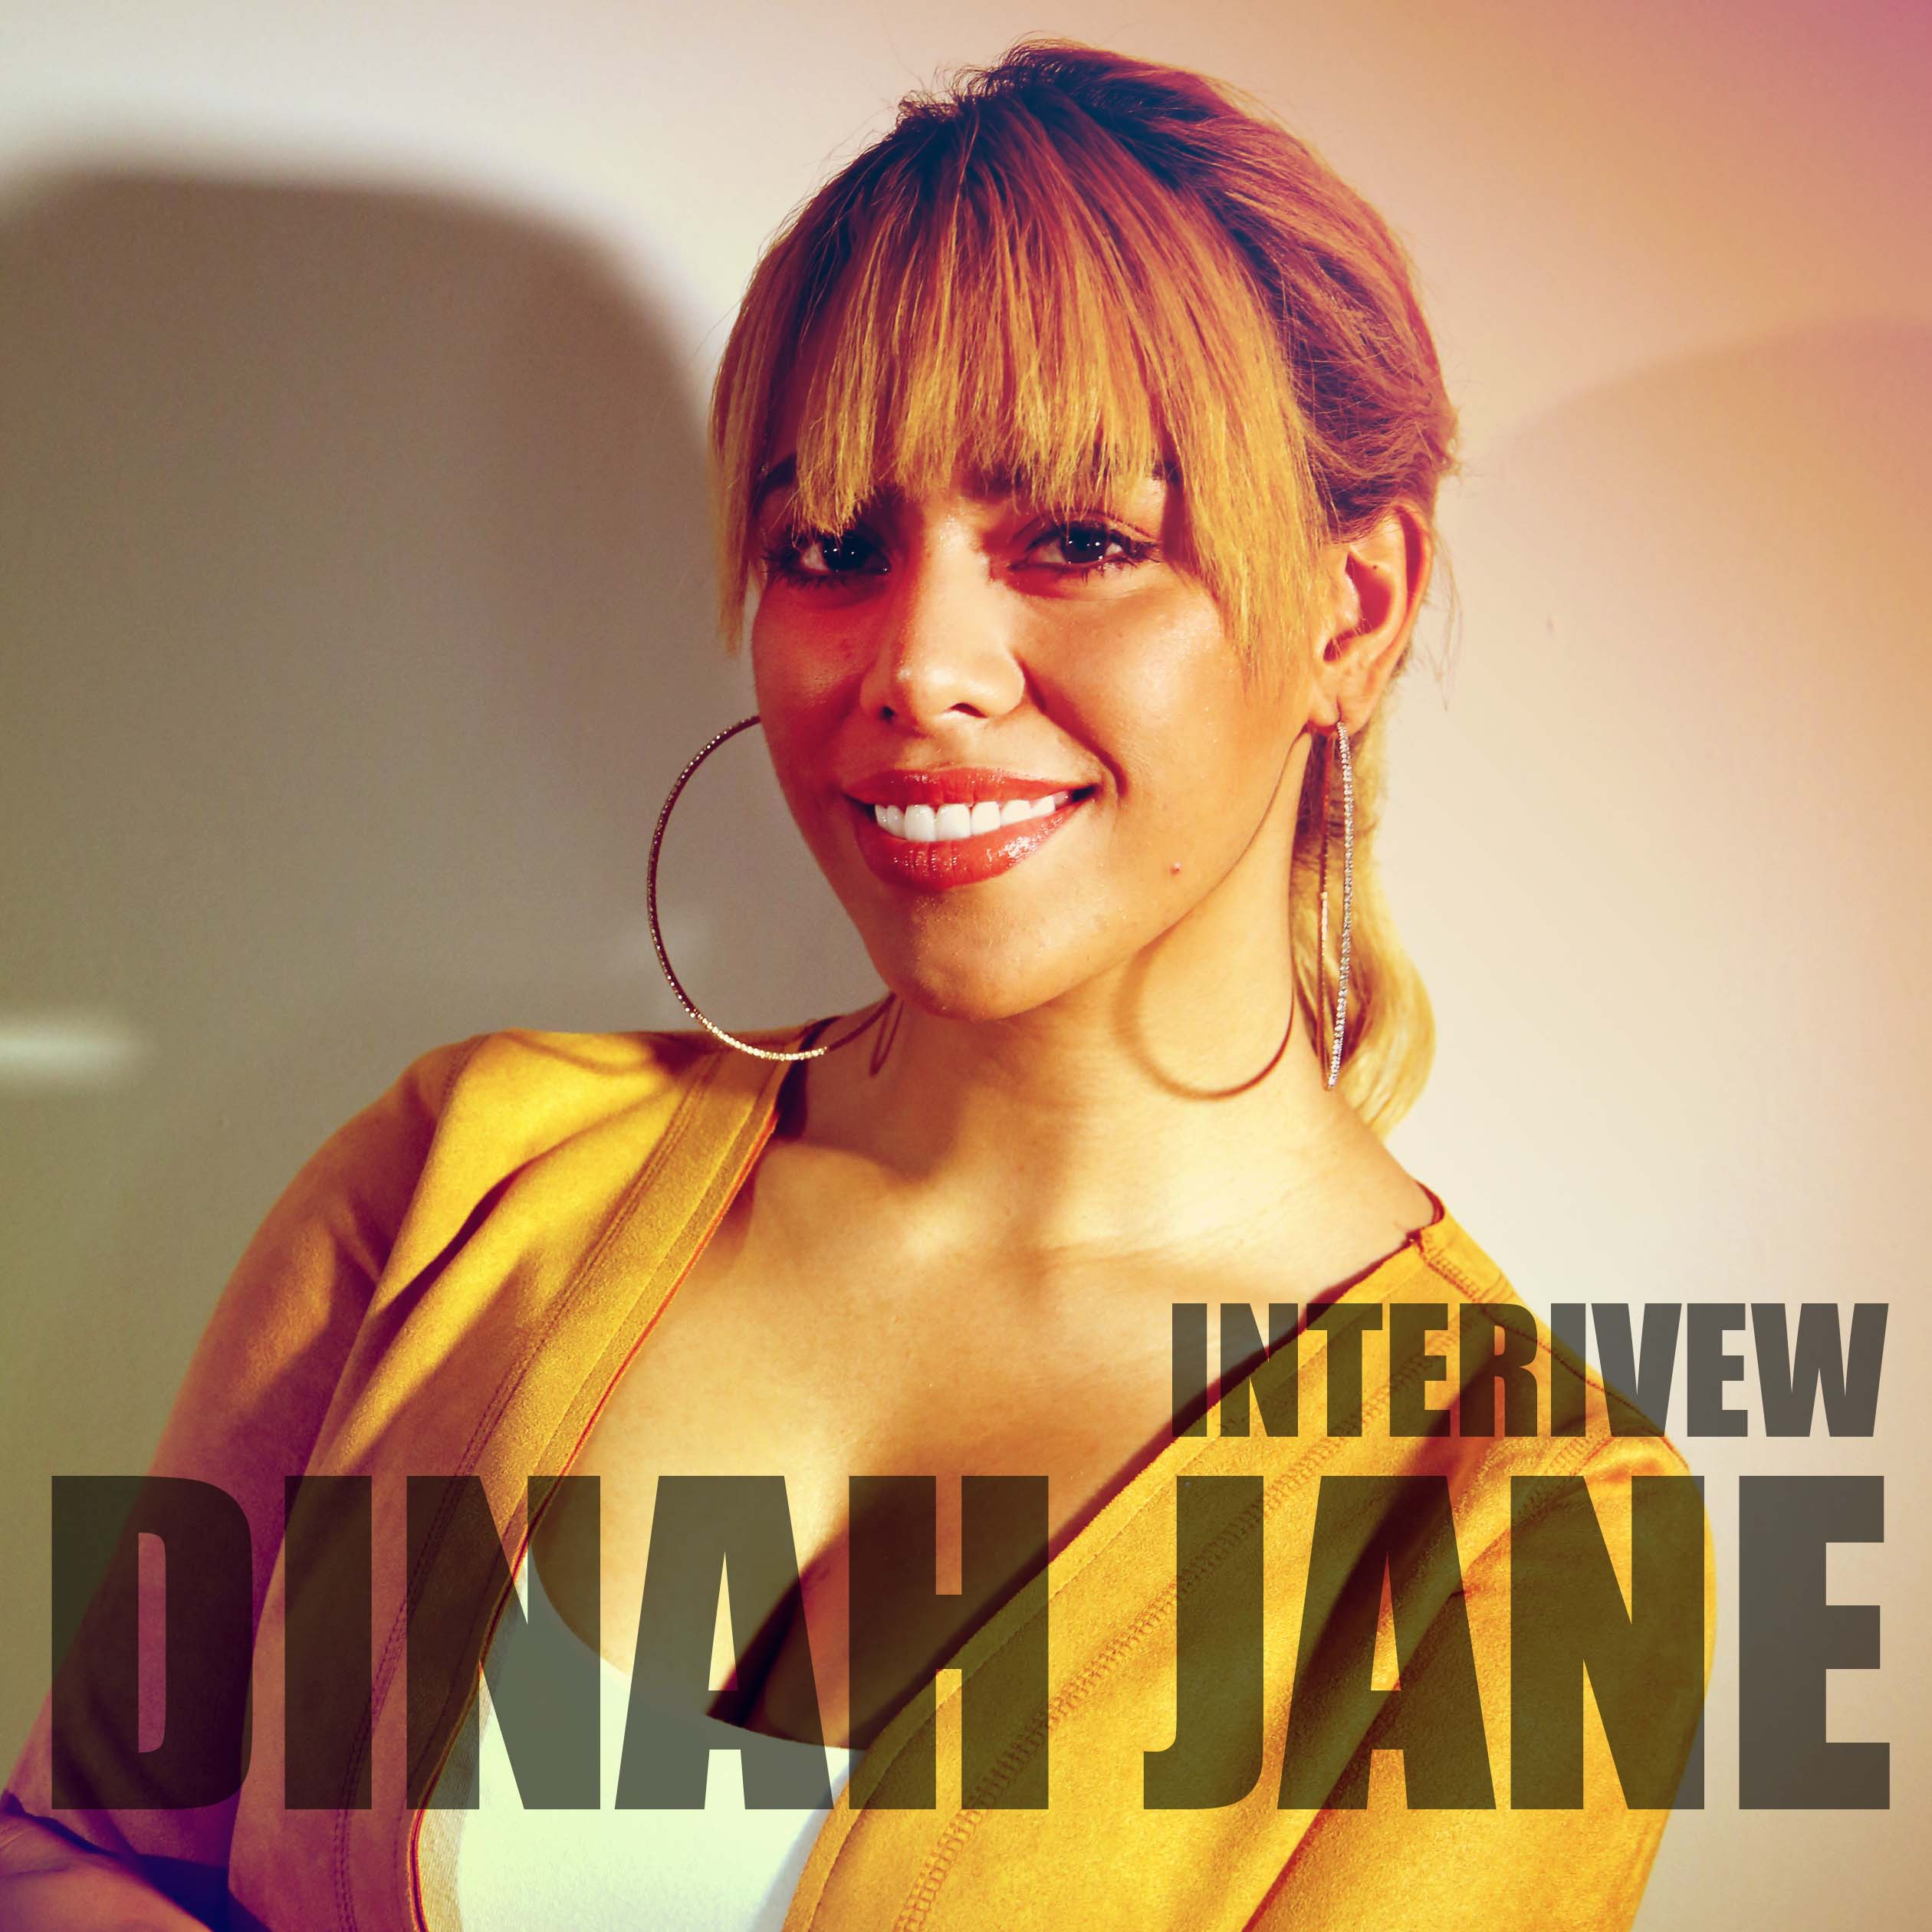 Dinah Jane – FULL VIDEO INTERVIEW & Meet and Greet Pics